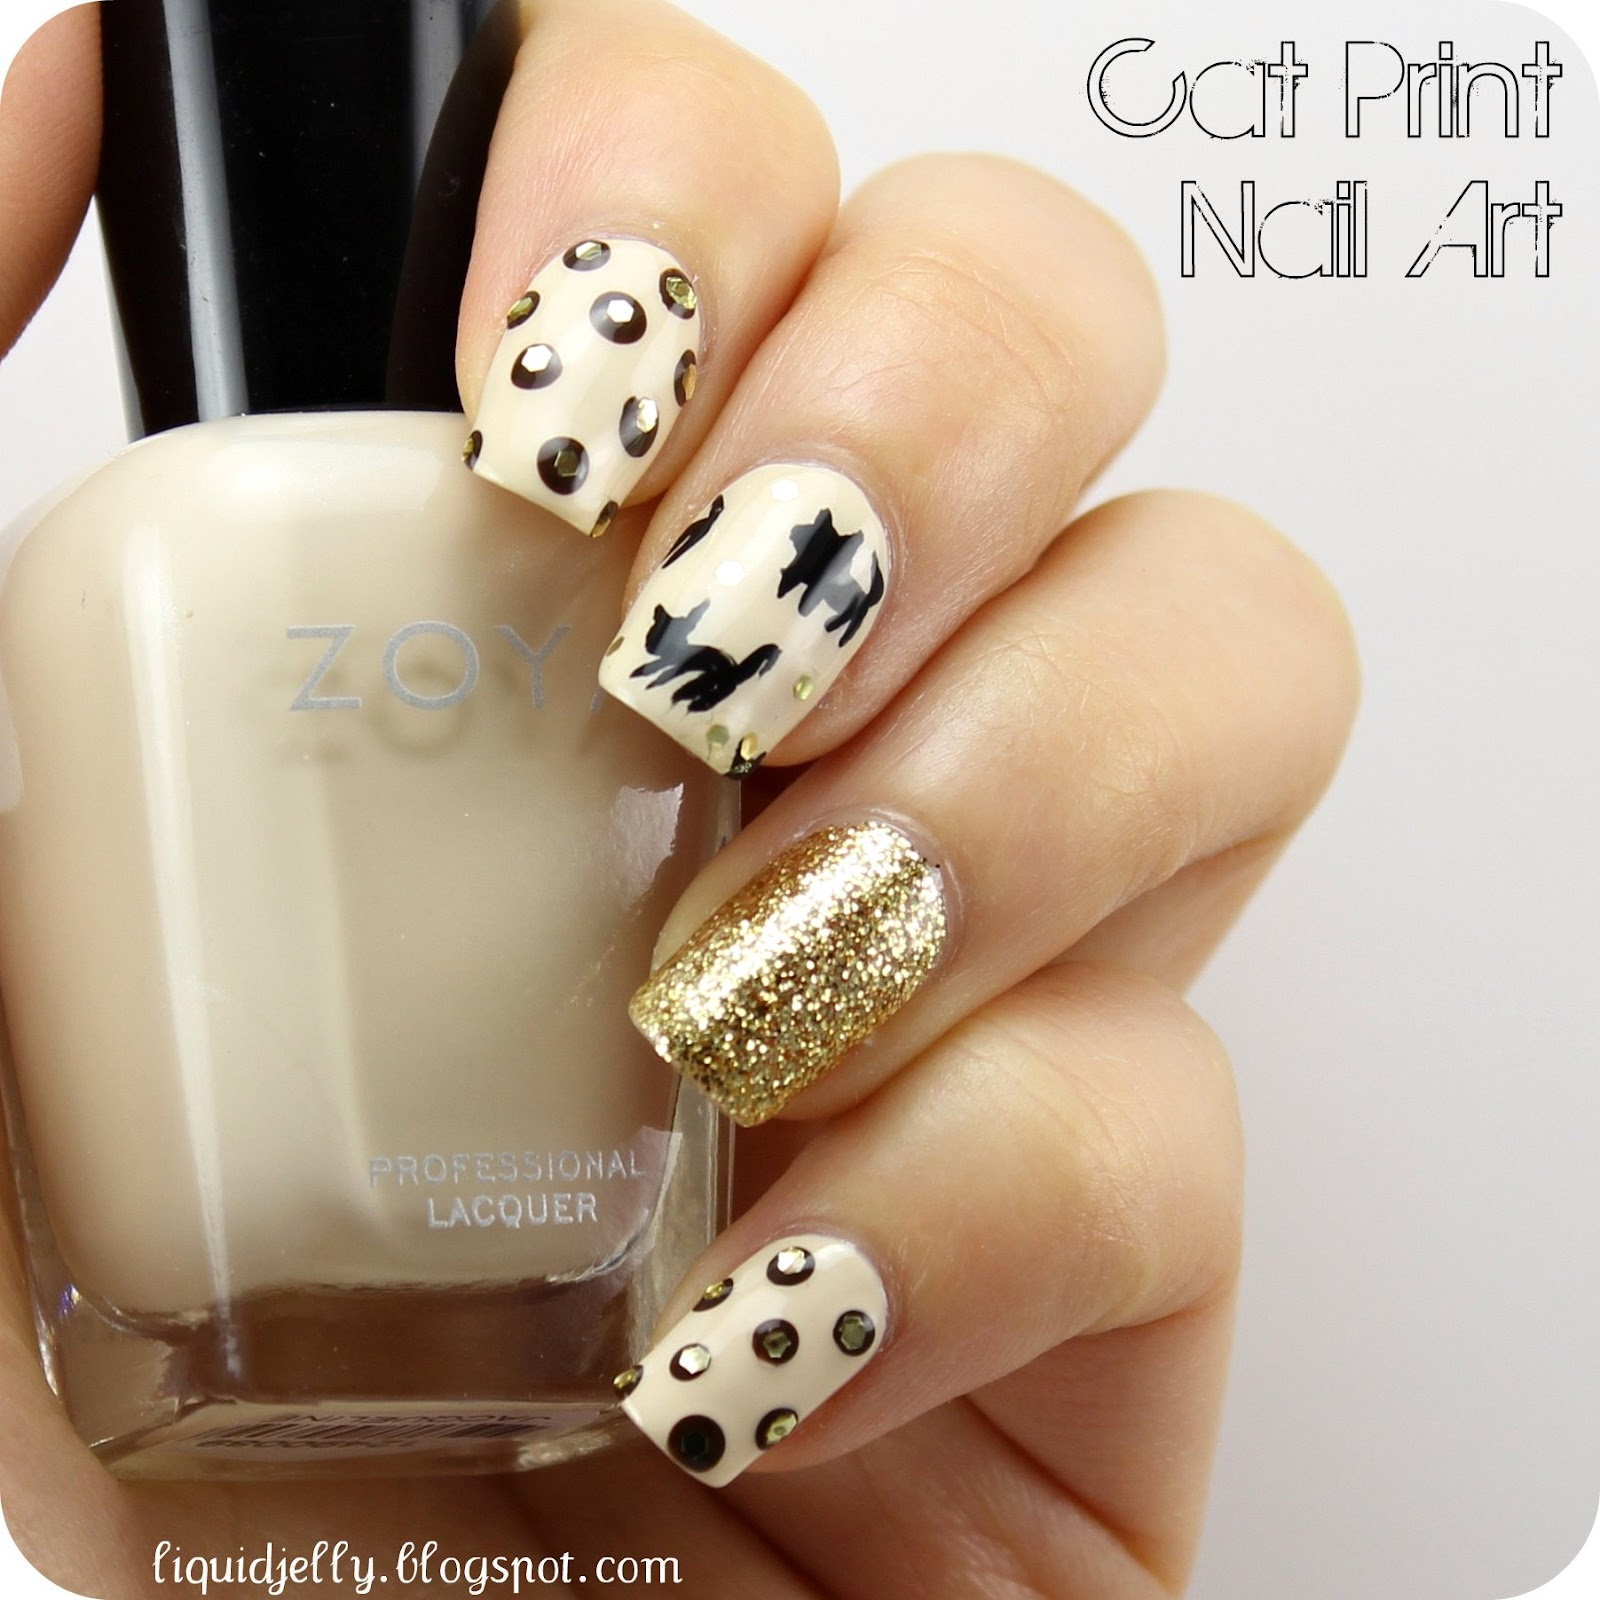 Liquid jelly cat print nail art i love black prints on nude or beige backgrounds especially on fabric so when i saw this adorable cat print nail art in jan 2013s nail venus issue prinsesfo Image collections